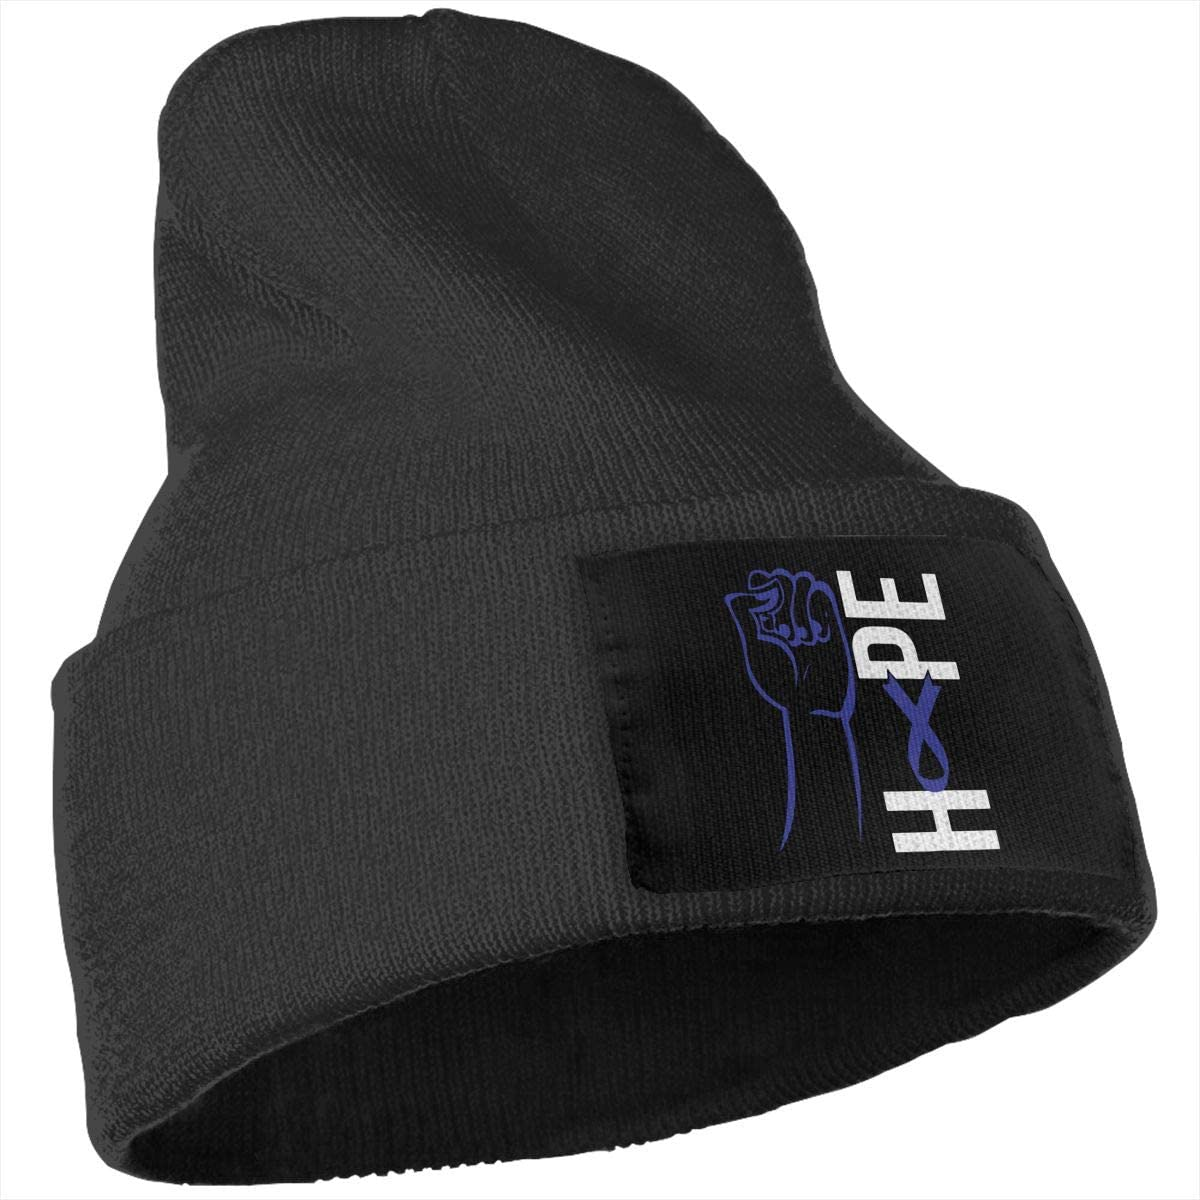 COLLJL-8 Unisex Colon Cancer Awareness Flag Outdoor Stretch Knit Beanies Hat Soft Winter Knit Caps